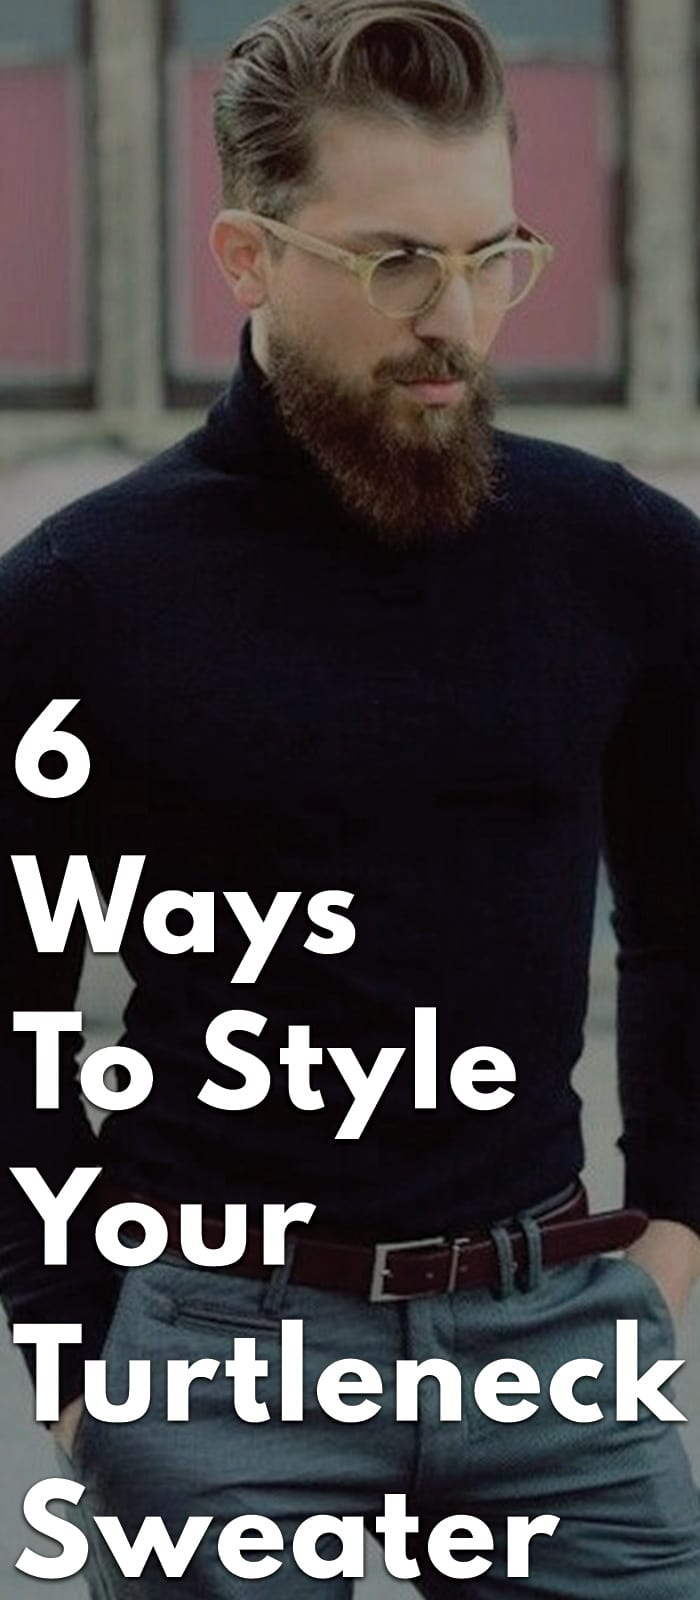 6-Ways-to-Style-Your-Turtleneck-Sweater